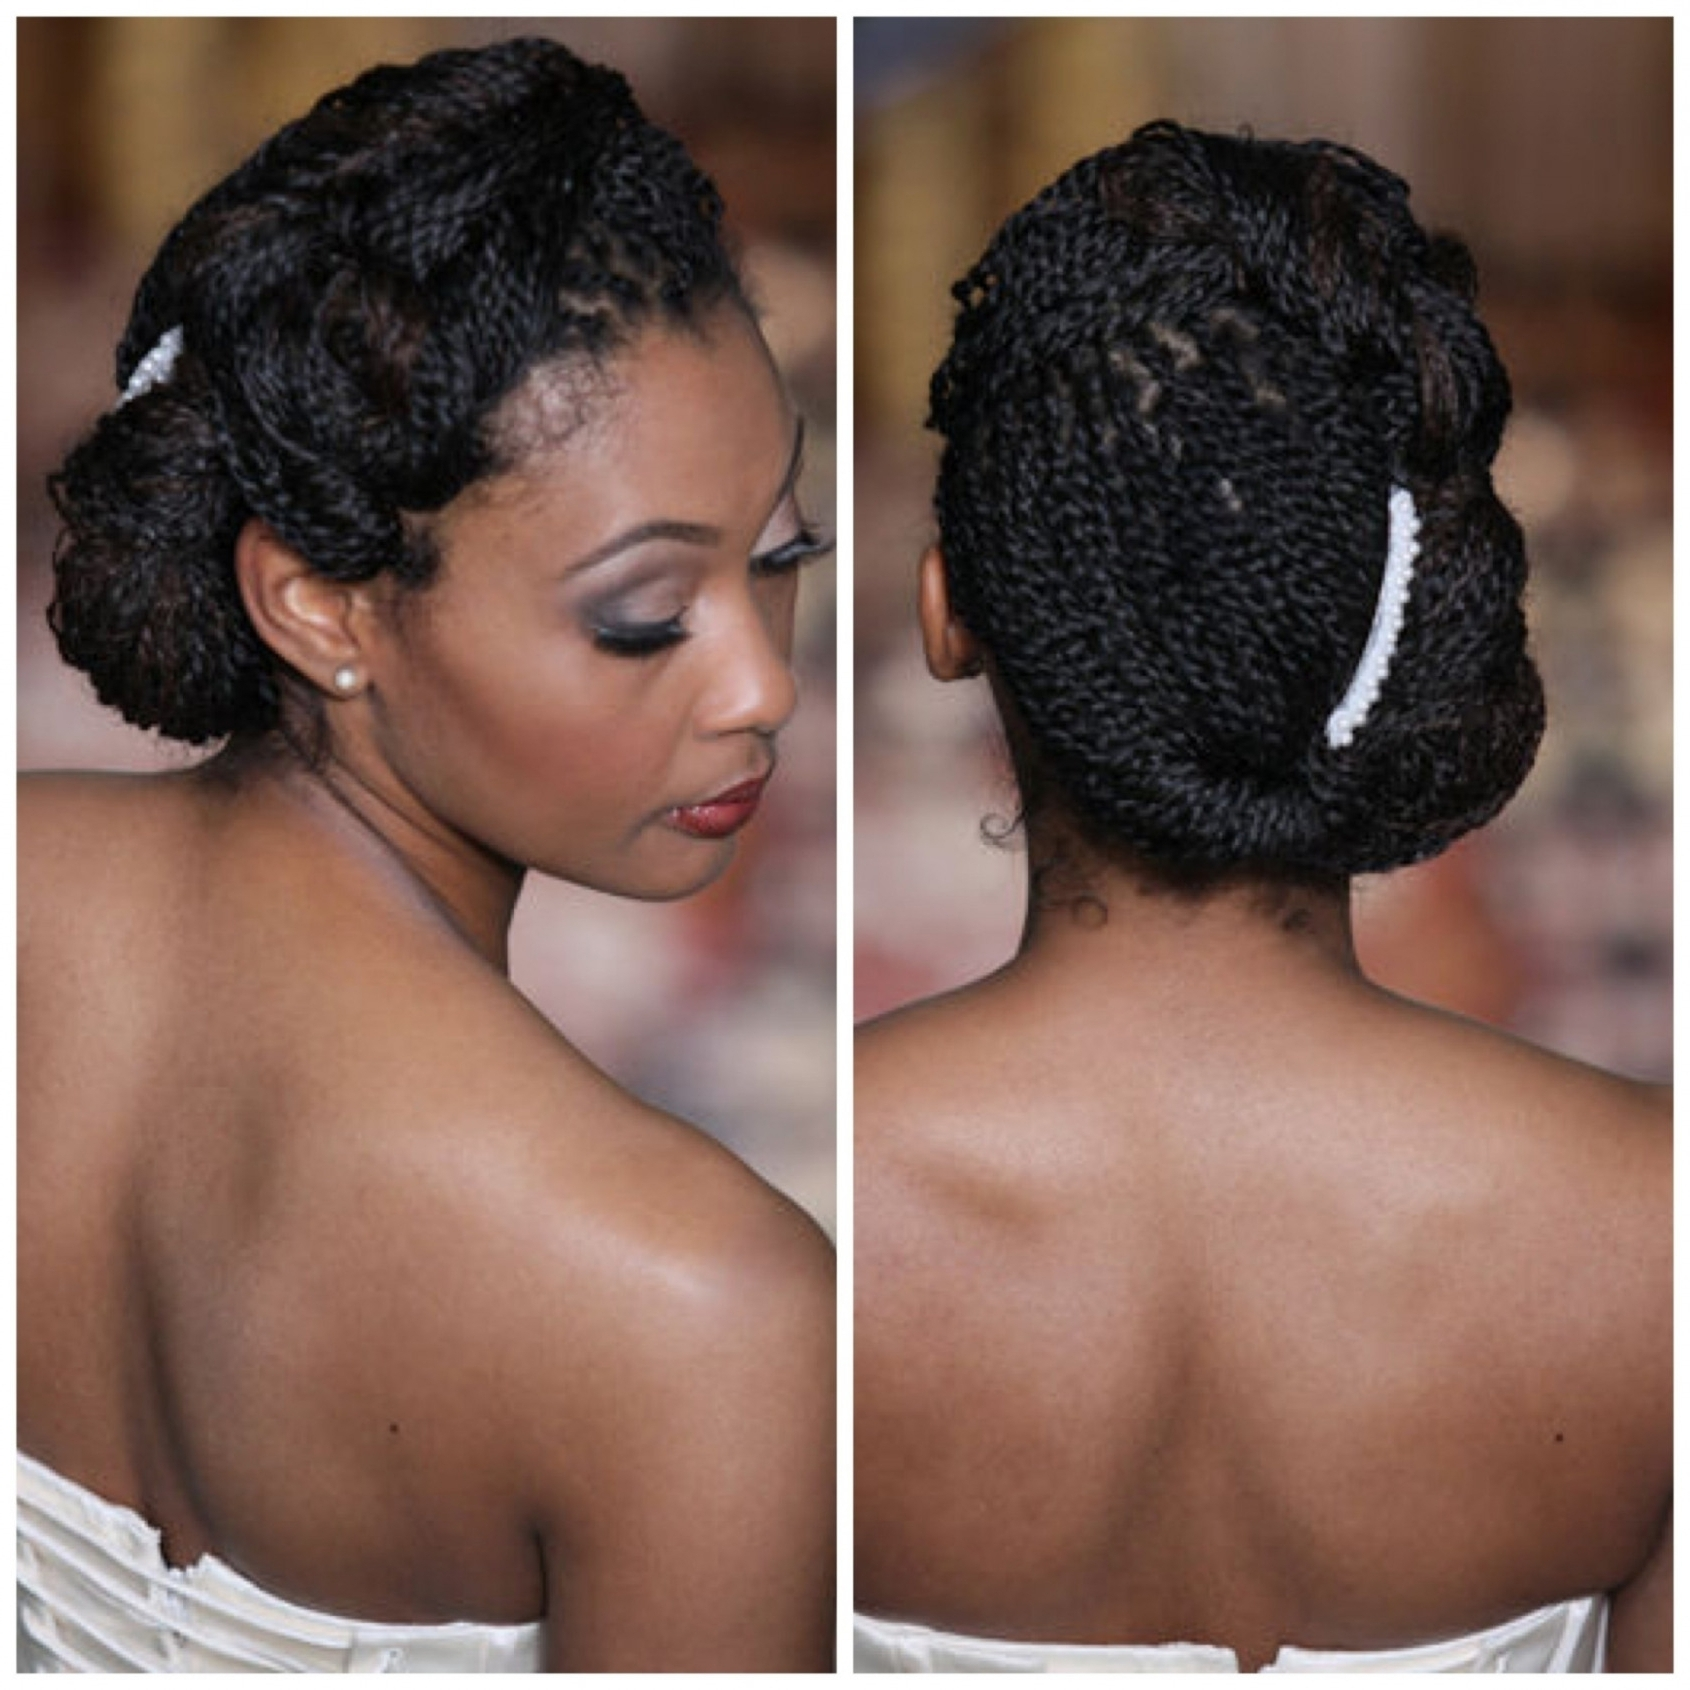 The New African American Wedding Hairstyles For Dreadlocks Luxury Pertaining To 2017 Dreadlocks Wedding Hairstyles (View 15 of 15)